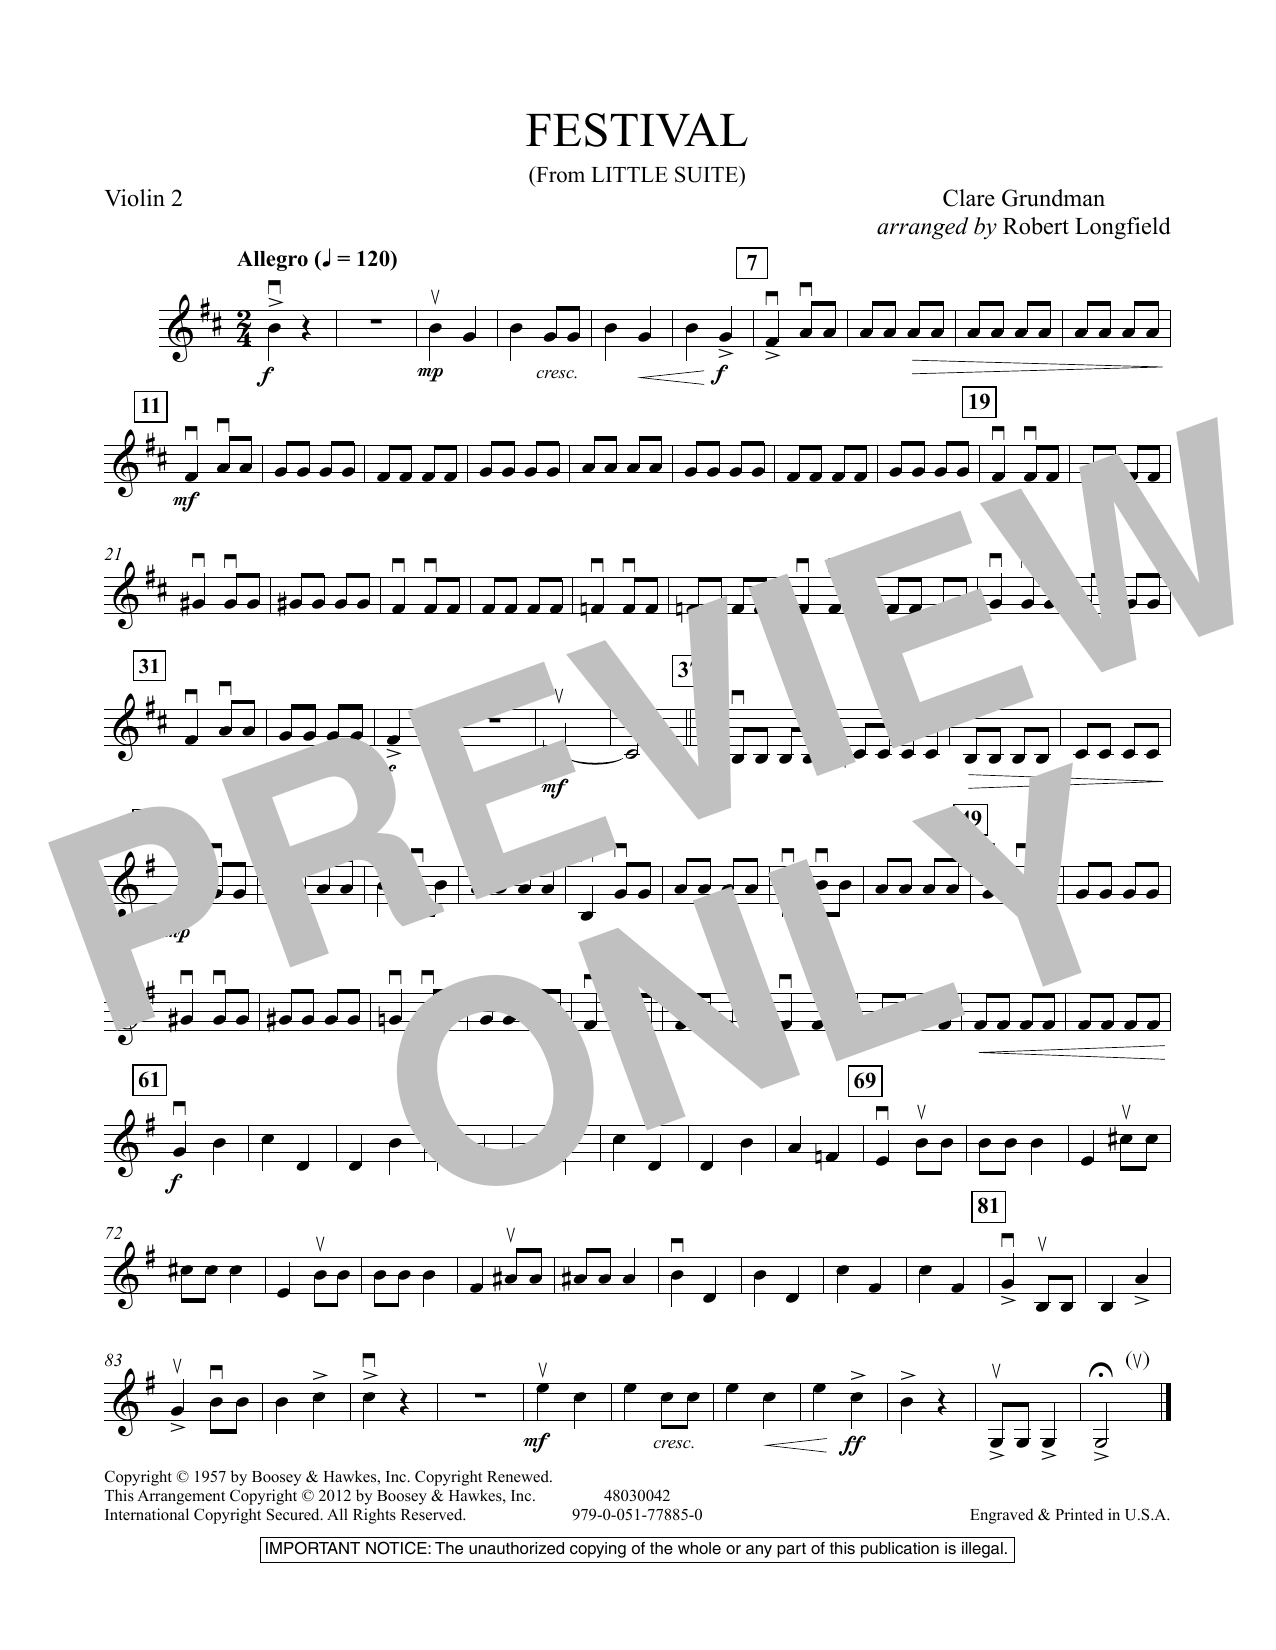 Festival (from Little Suite) - Violin 2 Sheet Music